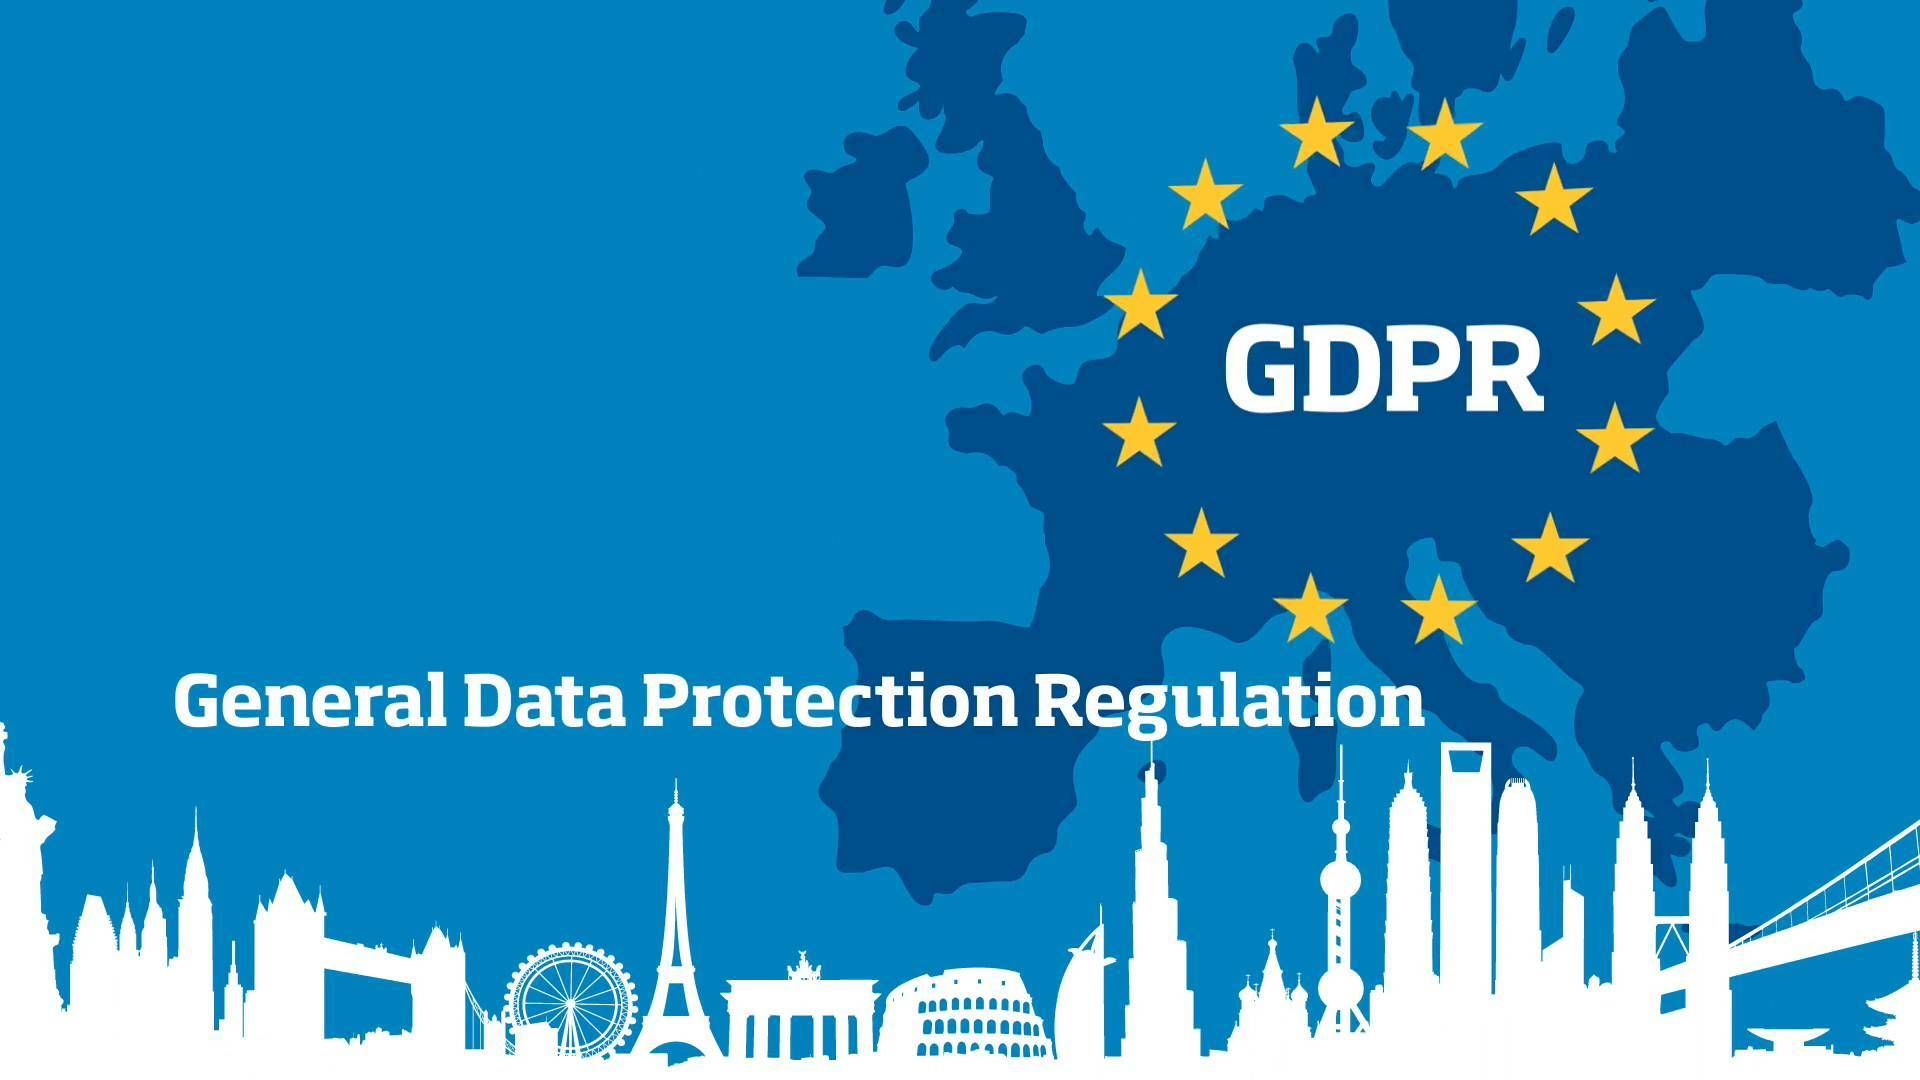 9 Best GDPR Courses & Certifications - Learn GDPR Online